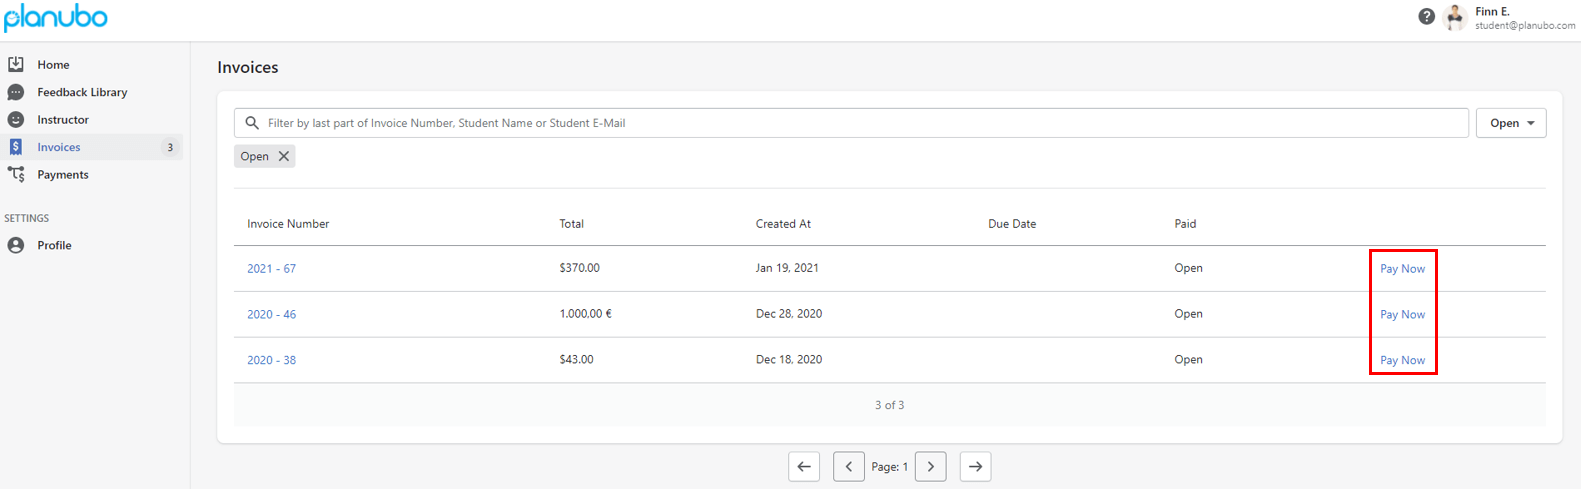 Student invoices after Stripe integration displayed within the Planubo platform